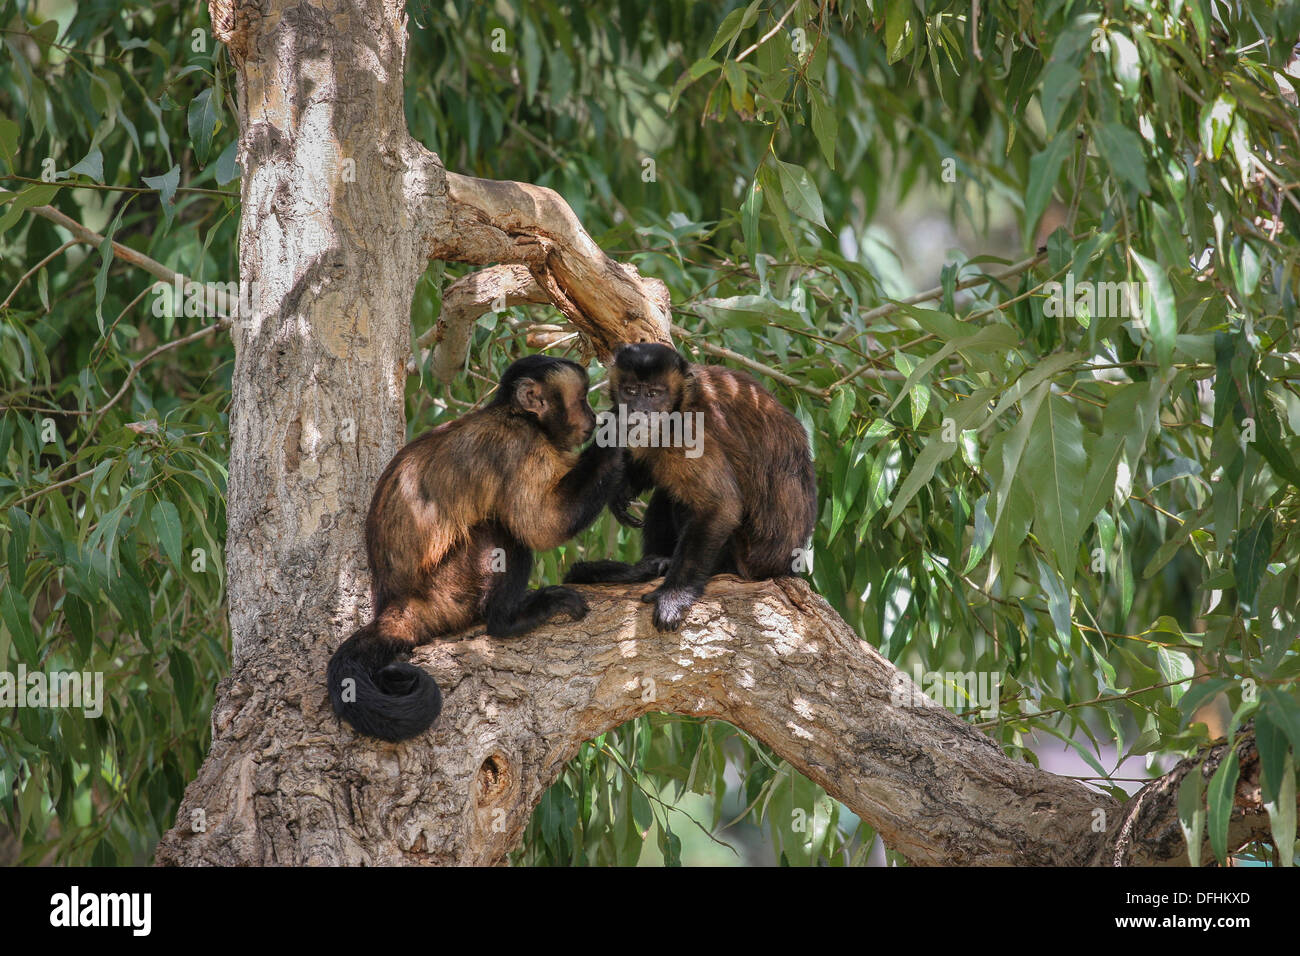 Grooming Tufted Capuchin monkeys, Denver Zoo, Denver, Colorado, USA Stock Photo